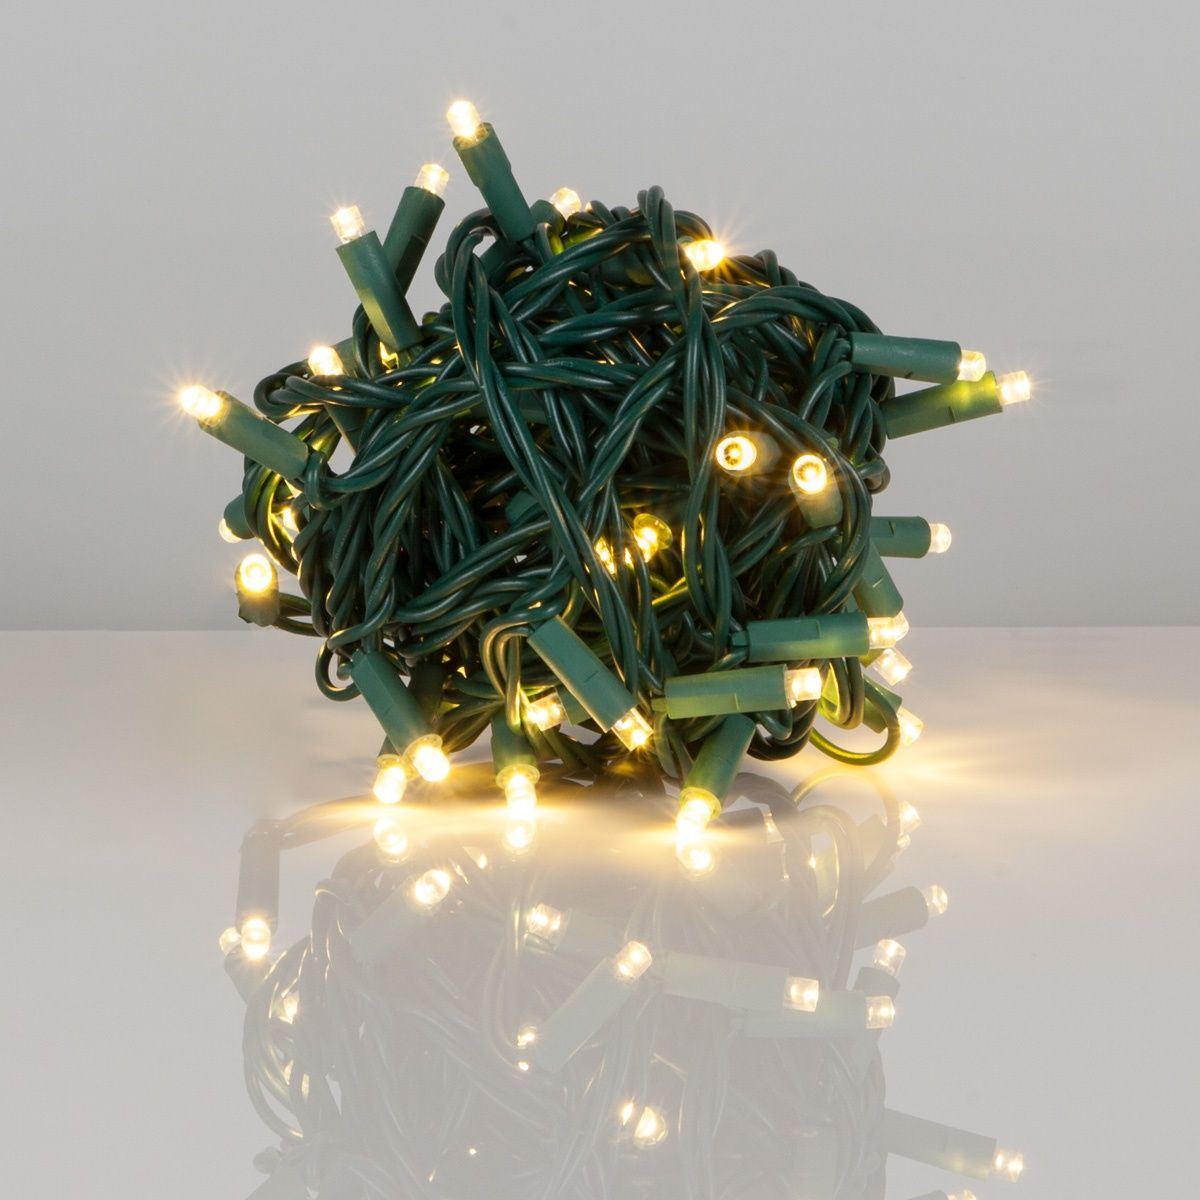 50 Warm White Outdoor LED Christmas Tree Lights, Mini 5MM